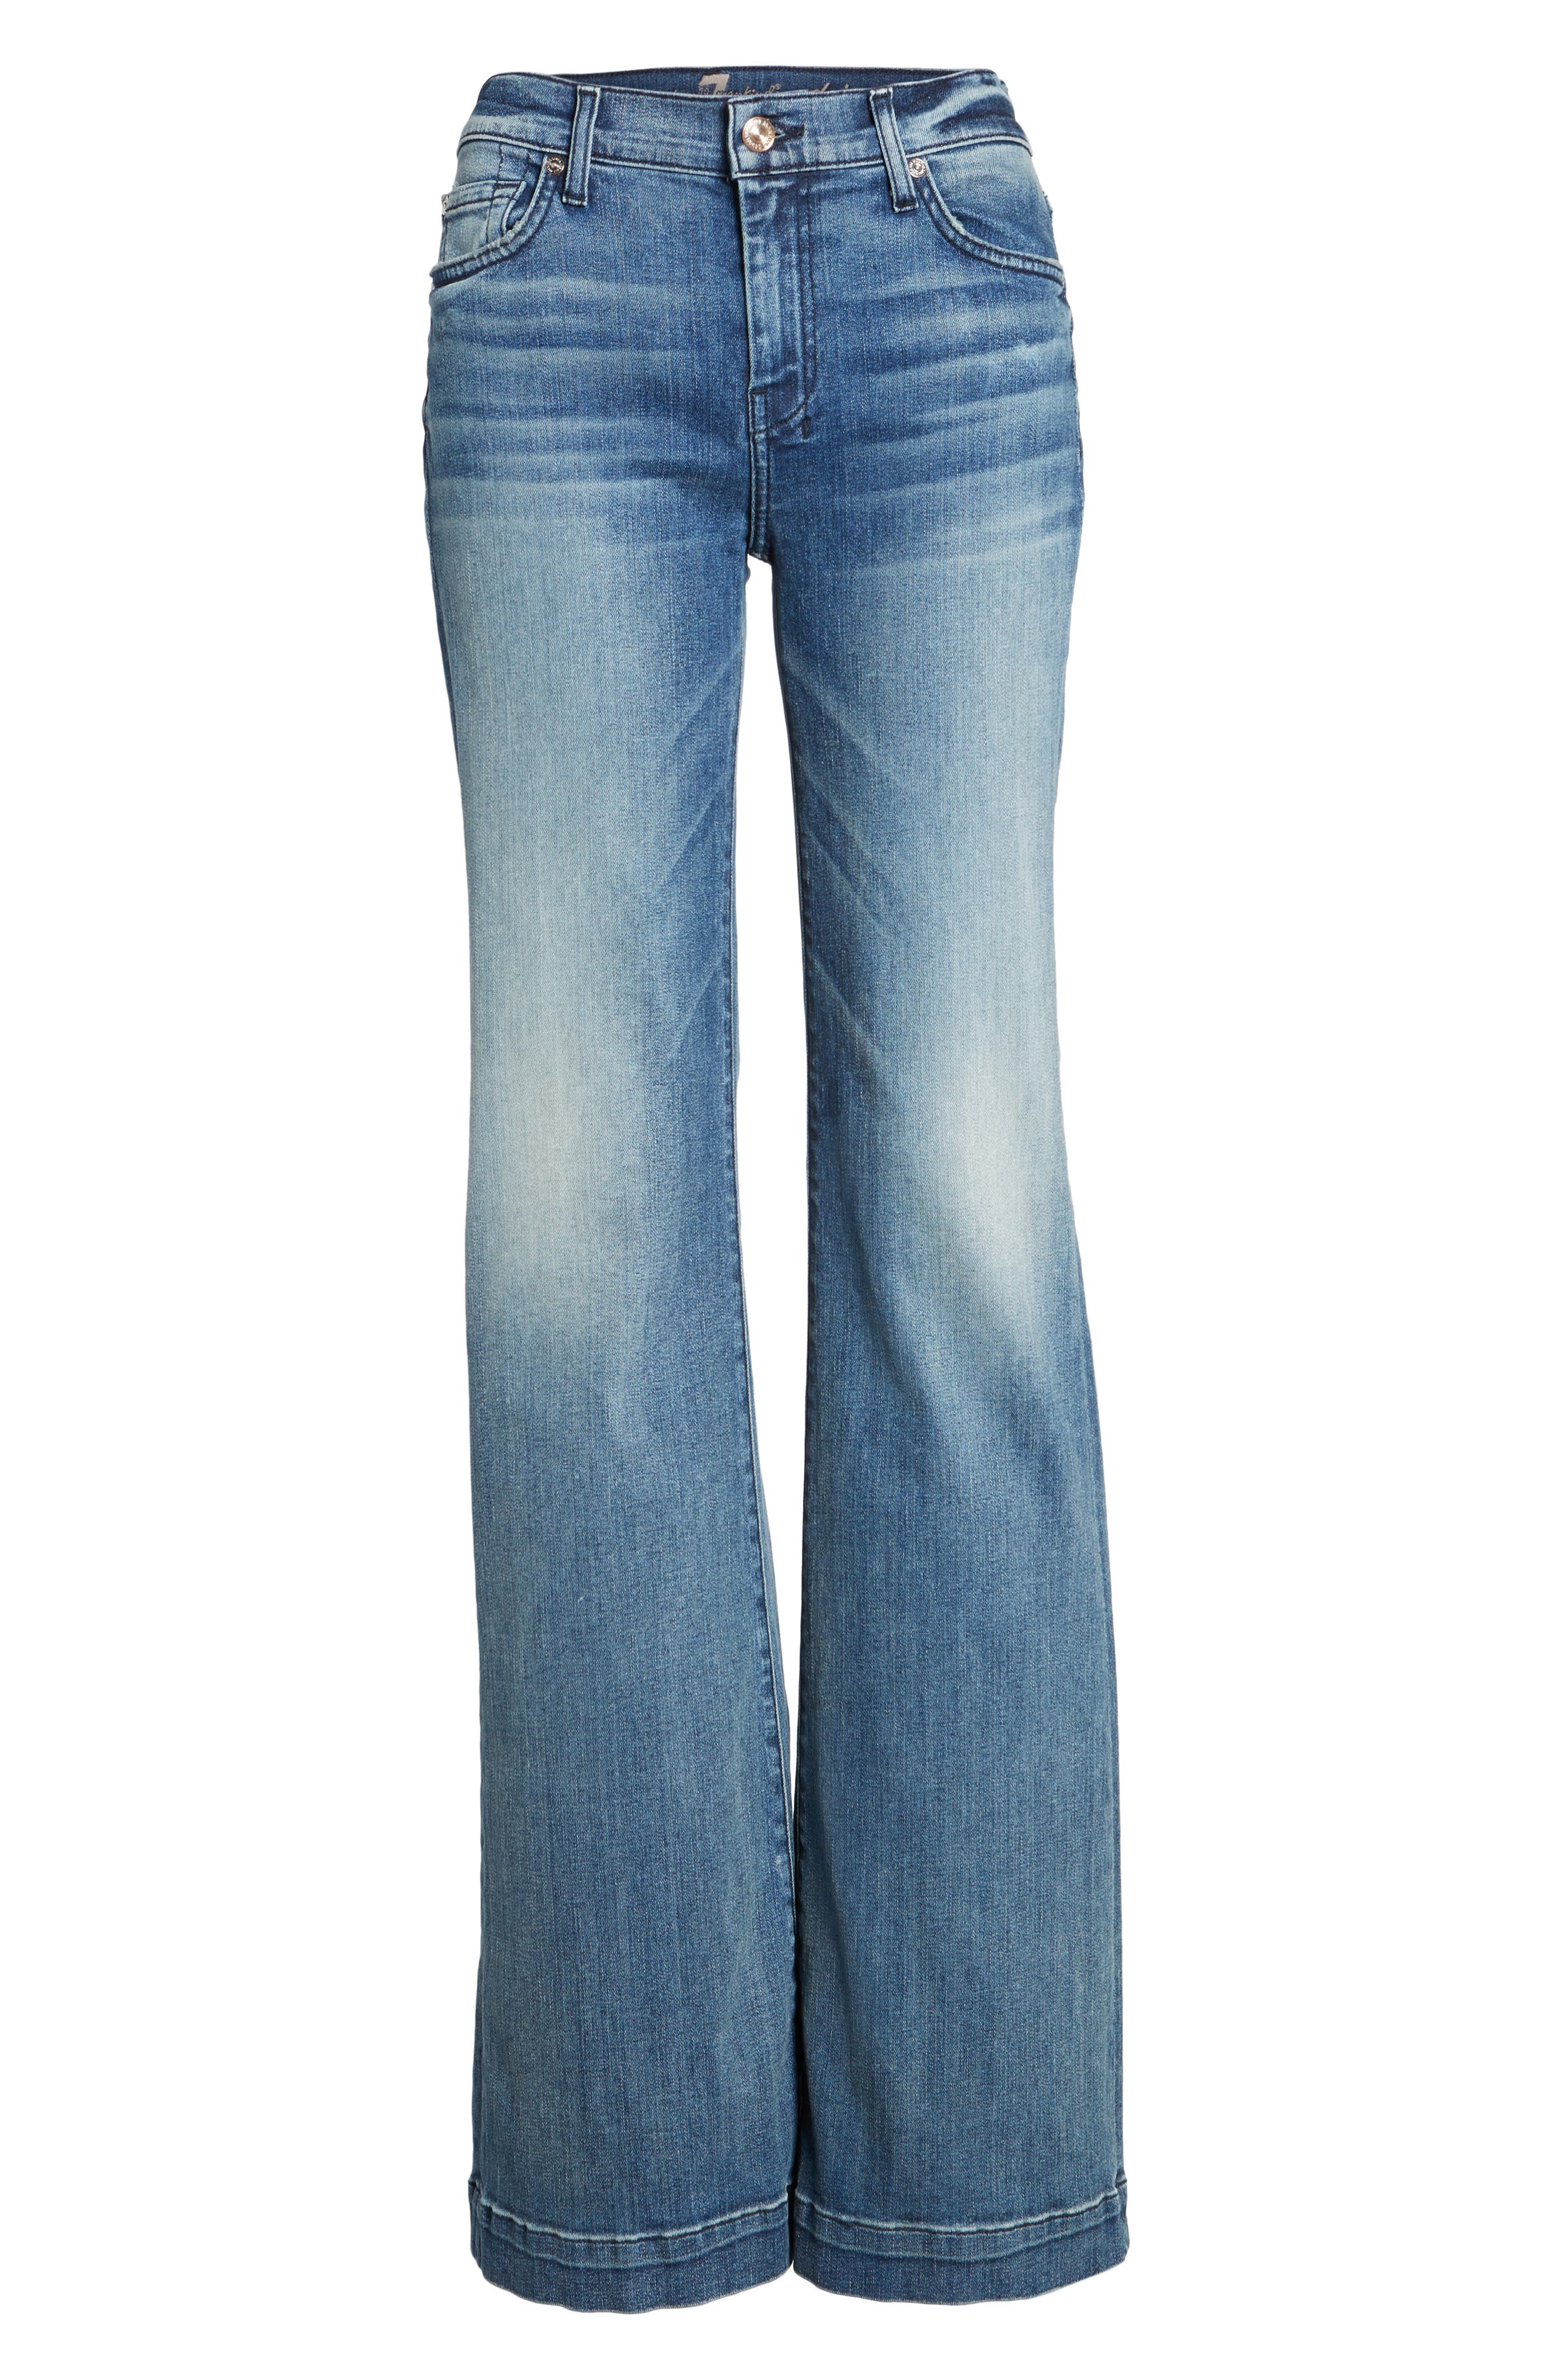 Tailorless Dojo Wide Leg Jeans,                             Alternate thumbnail 6, color,                             Wall Street Heritage